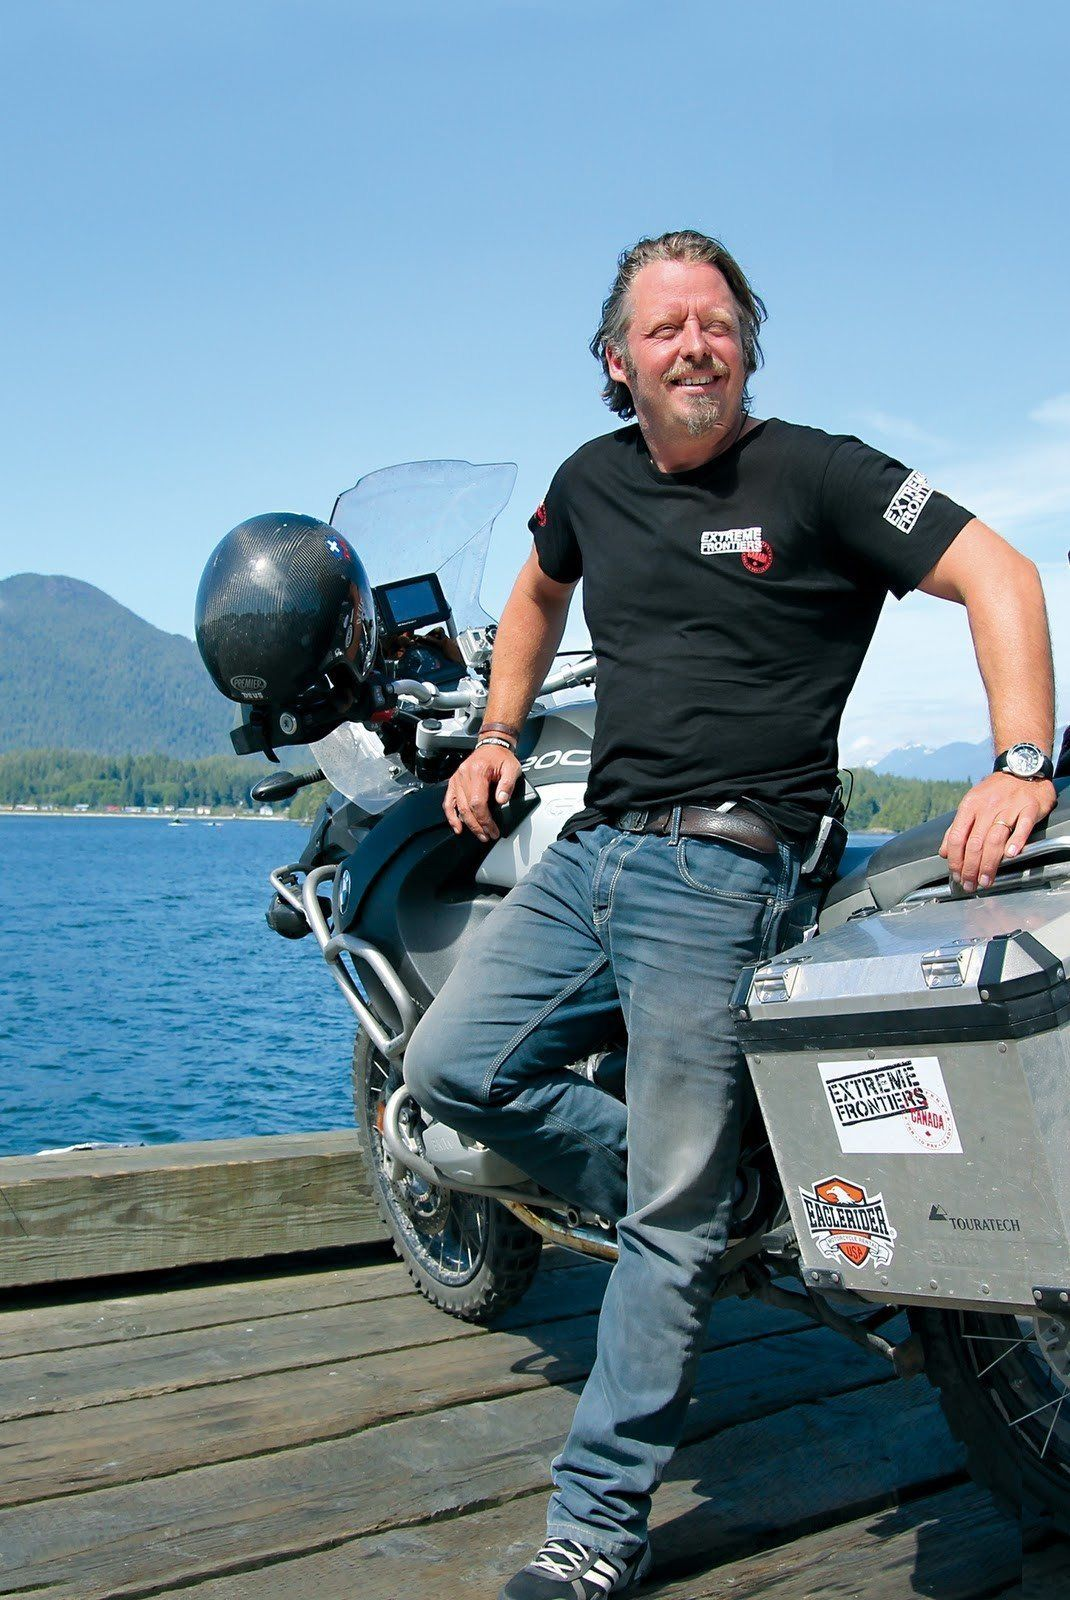 Adventure Rider and Dad Charley Boorman Extreme Frontiers: Racing Across Canada from Newfoundland to the Rockies